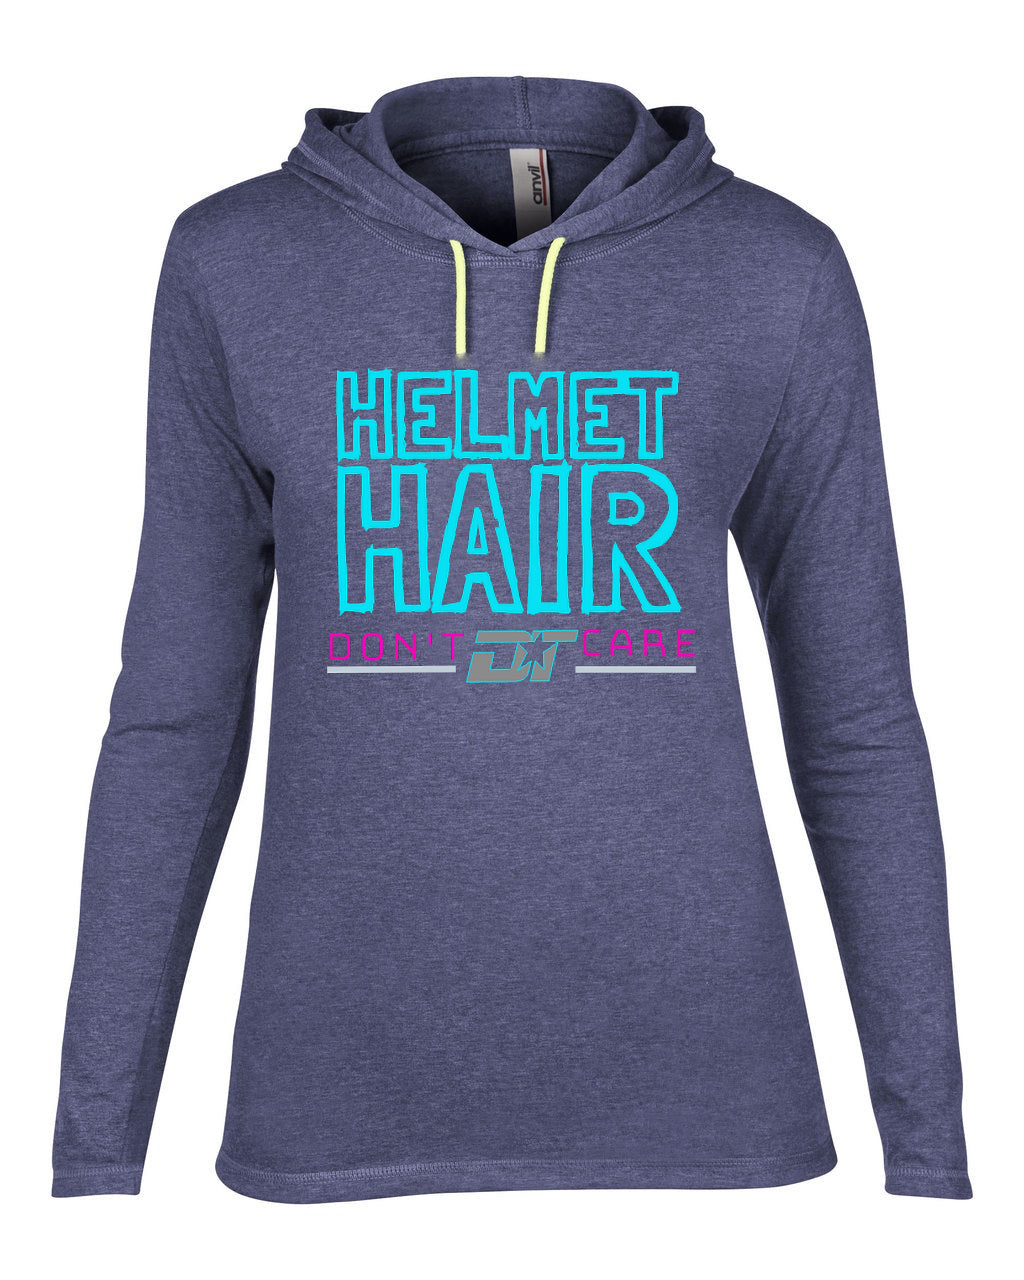 Ladies Helmet Hair Hooded Long Sleeve